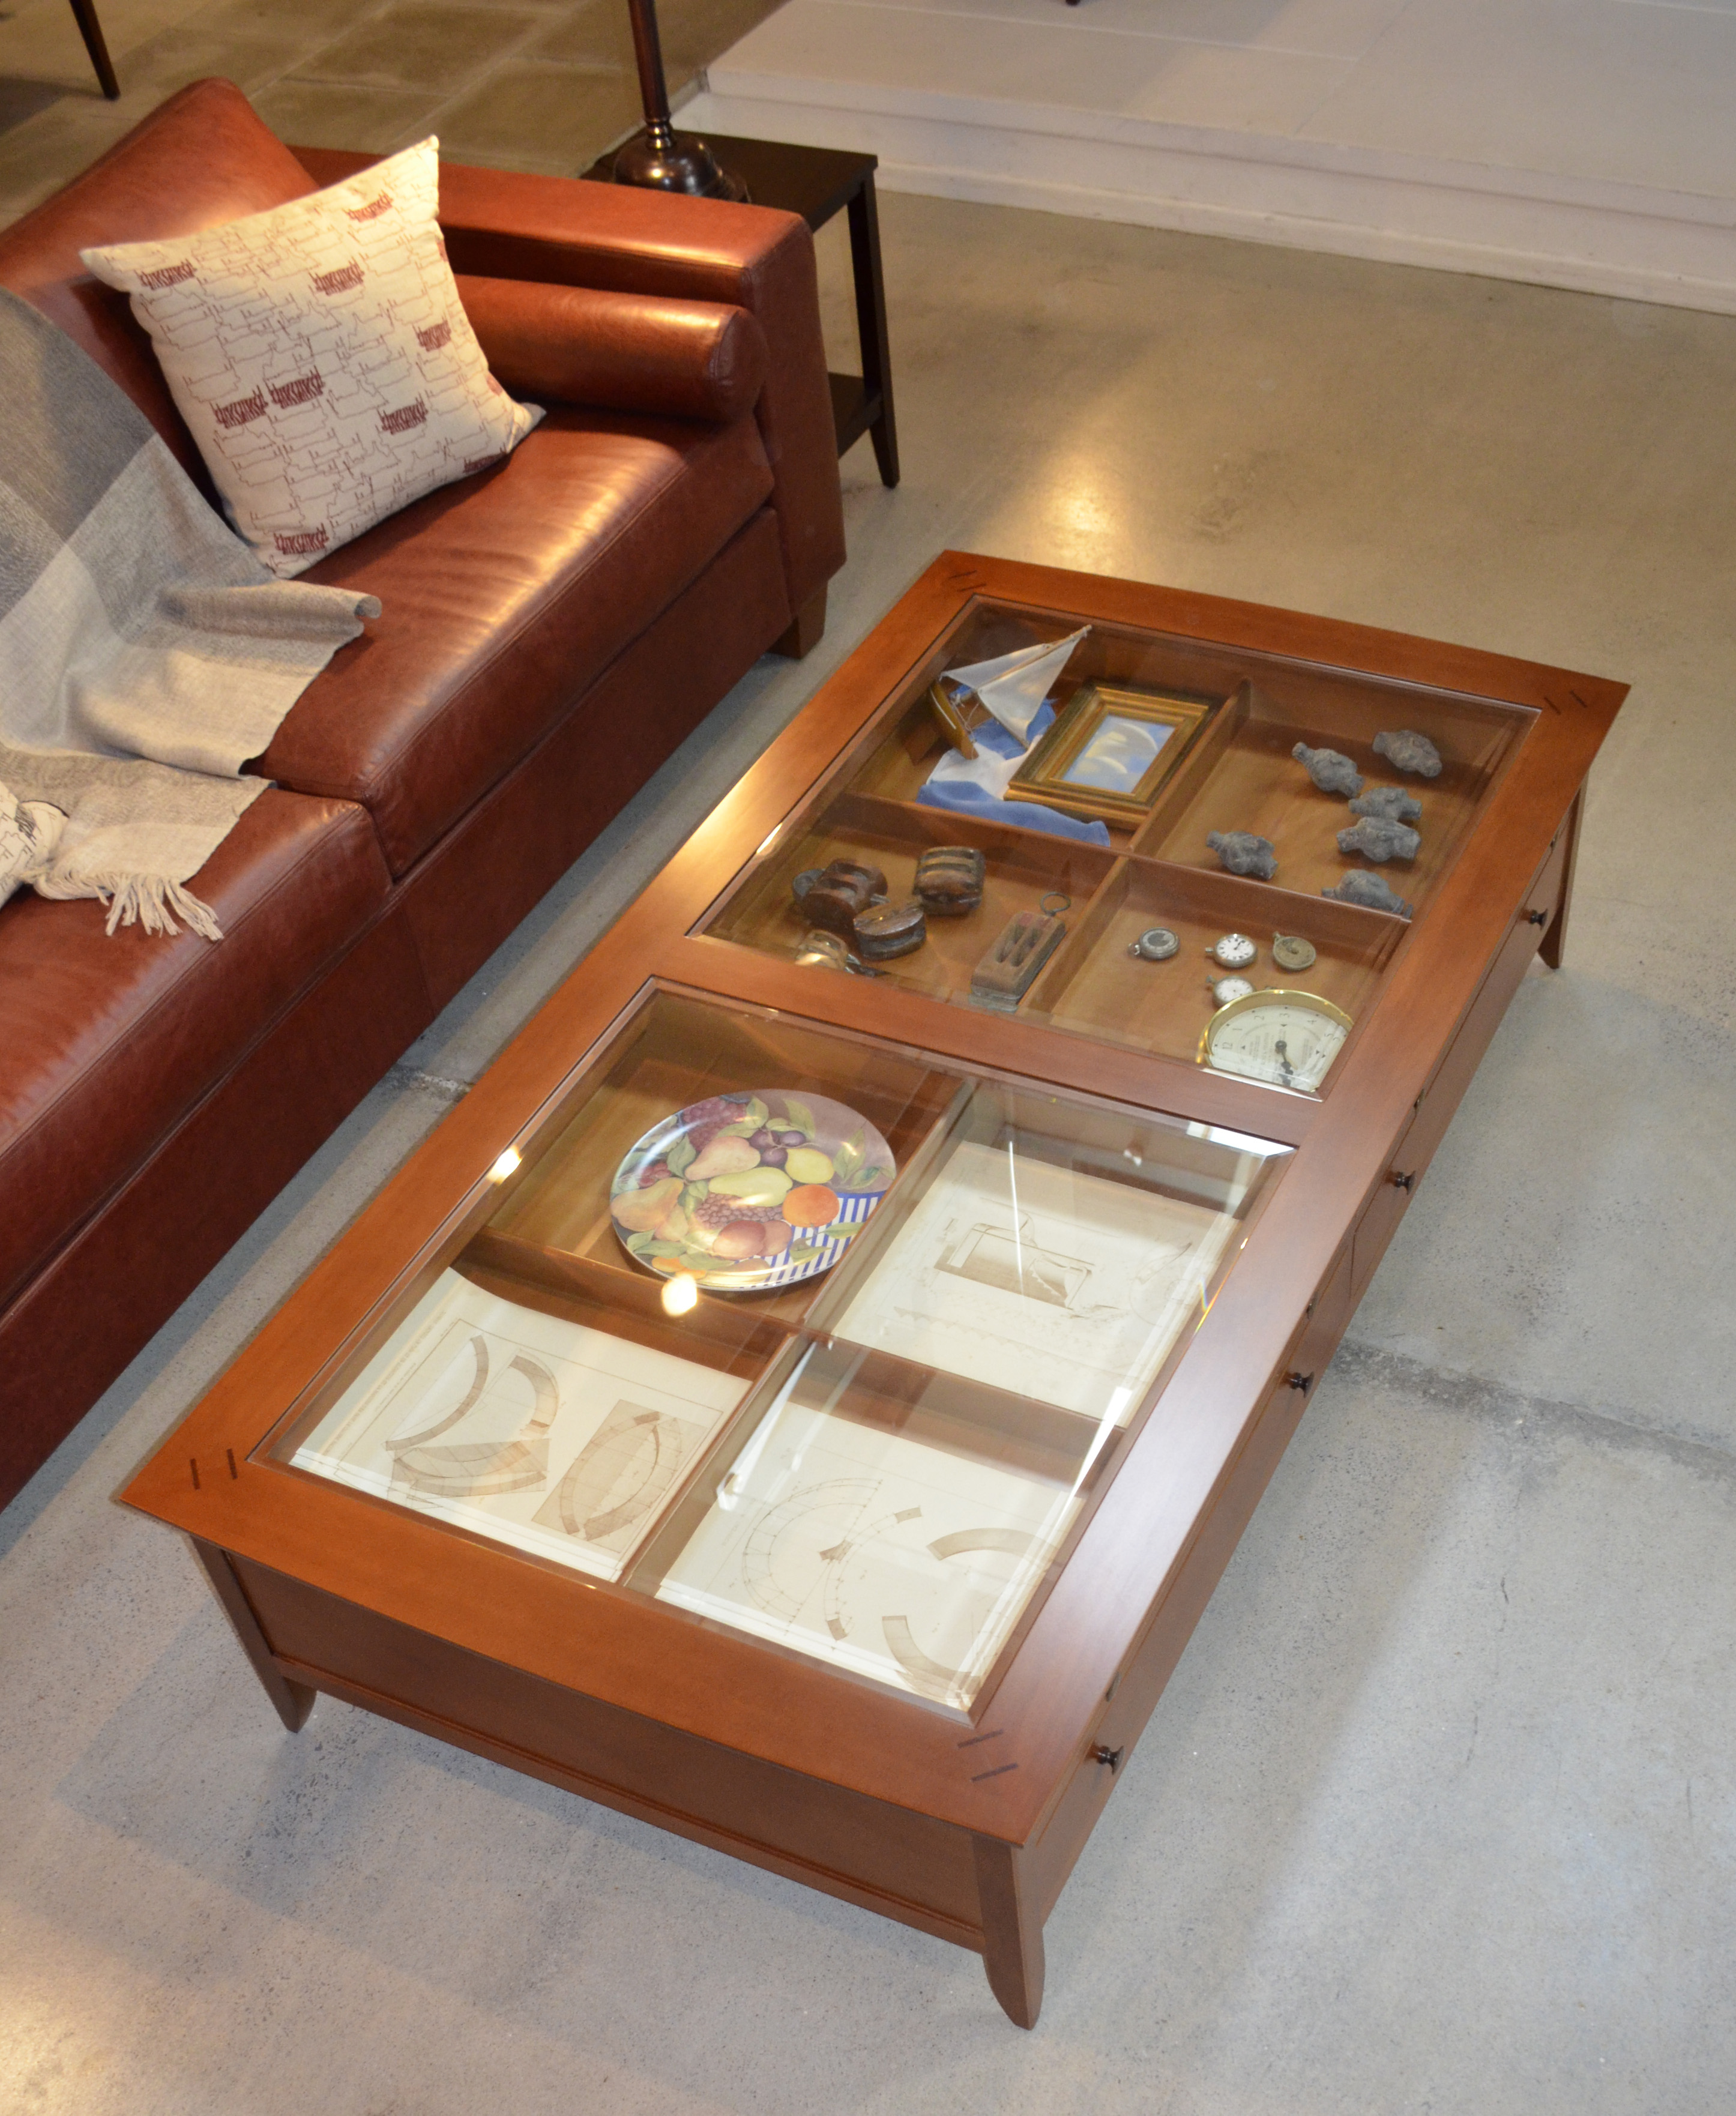 Tumblehome Coffee Table Double Size L178 Rose Heather